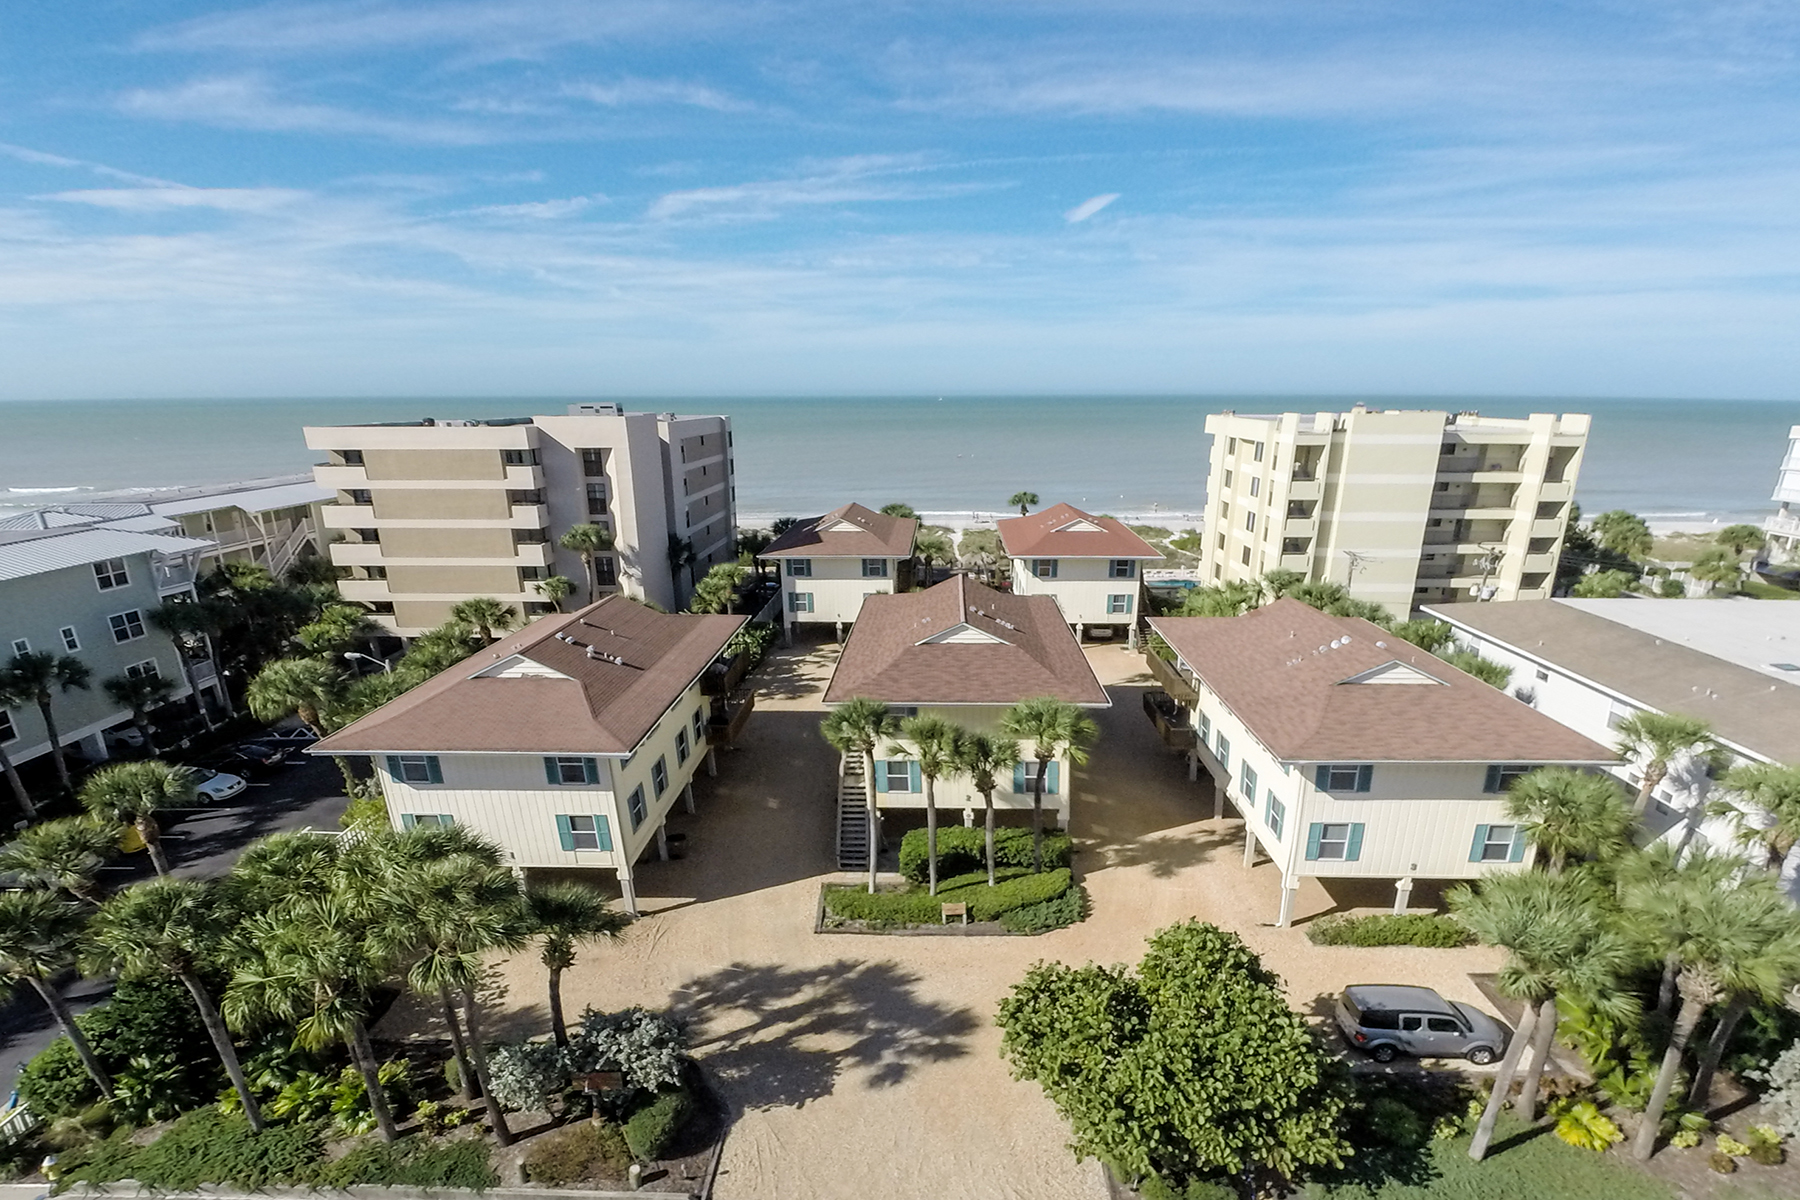 Condominio por un Venta en INDIAN ROCKS BEACH 1400 Gulf Blvd 1B Indian Rocks Beach, Florida 33785 Estados Unidos